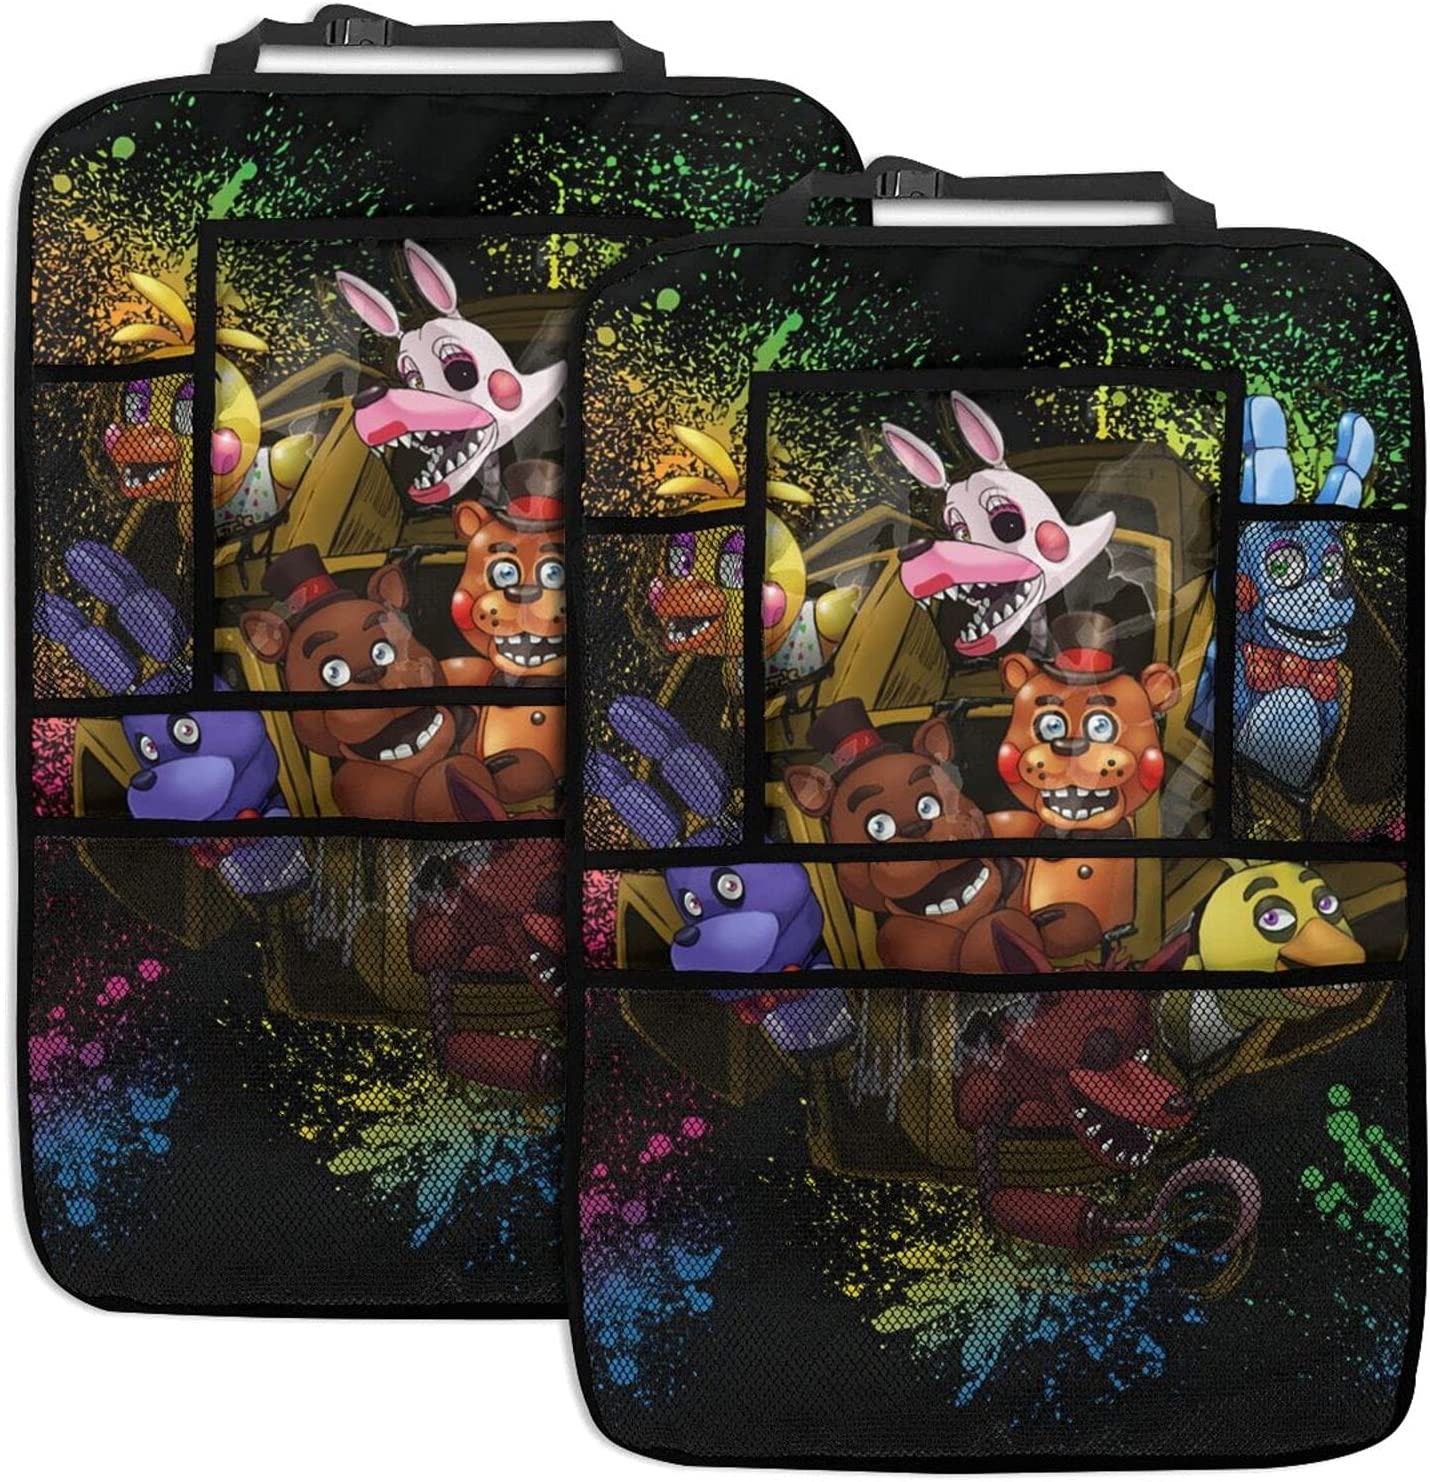 Five Nights At Freddy's Car Organizer Pack 2 New popularity lowest price Seat